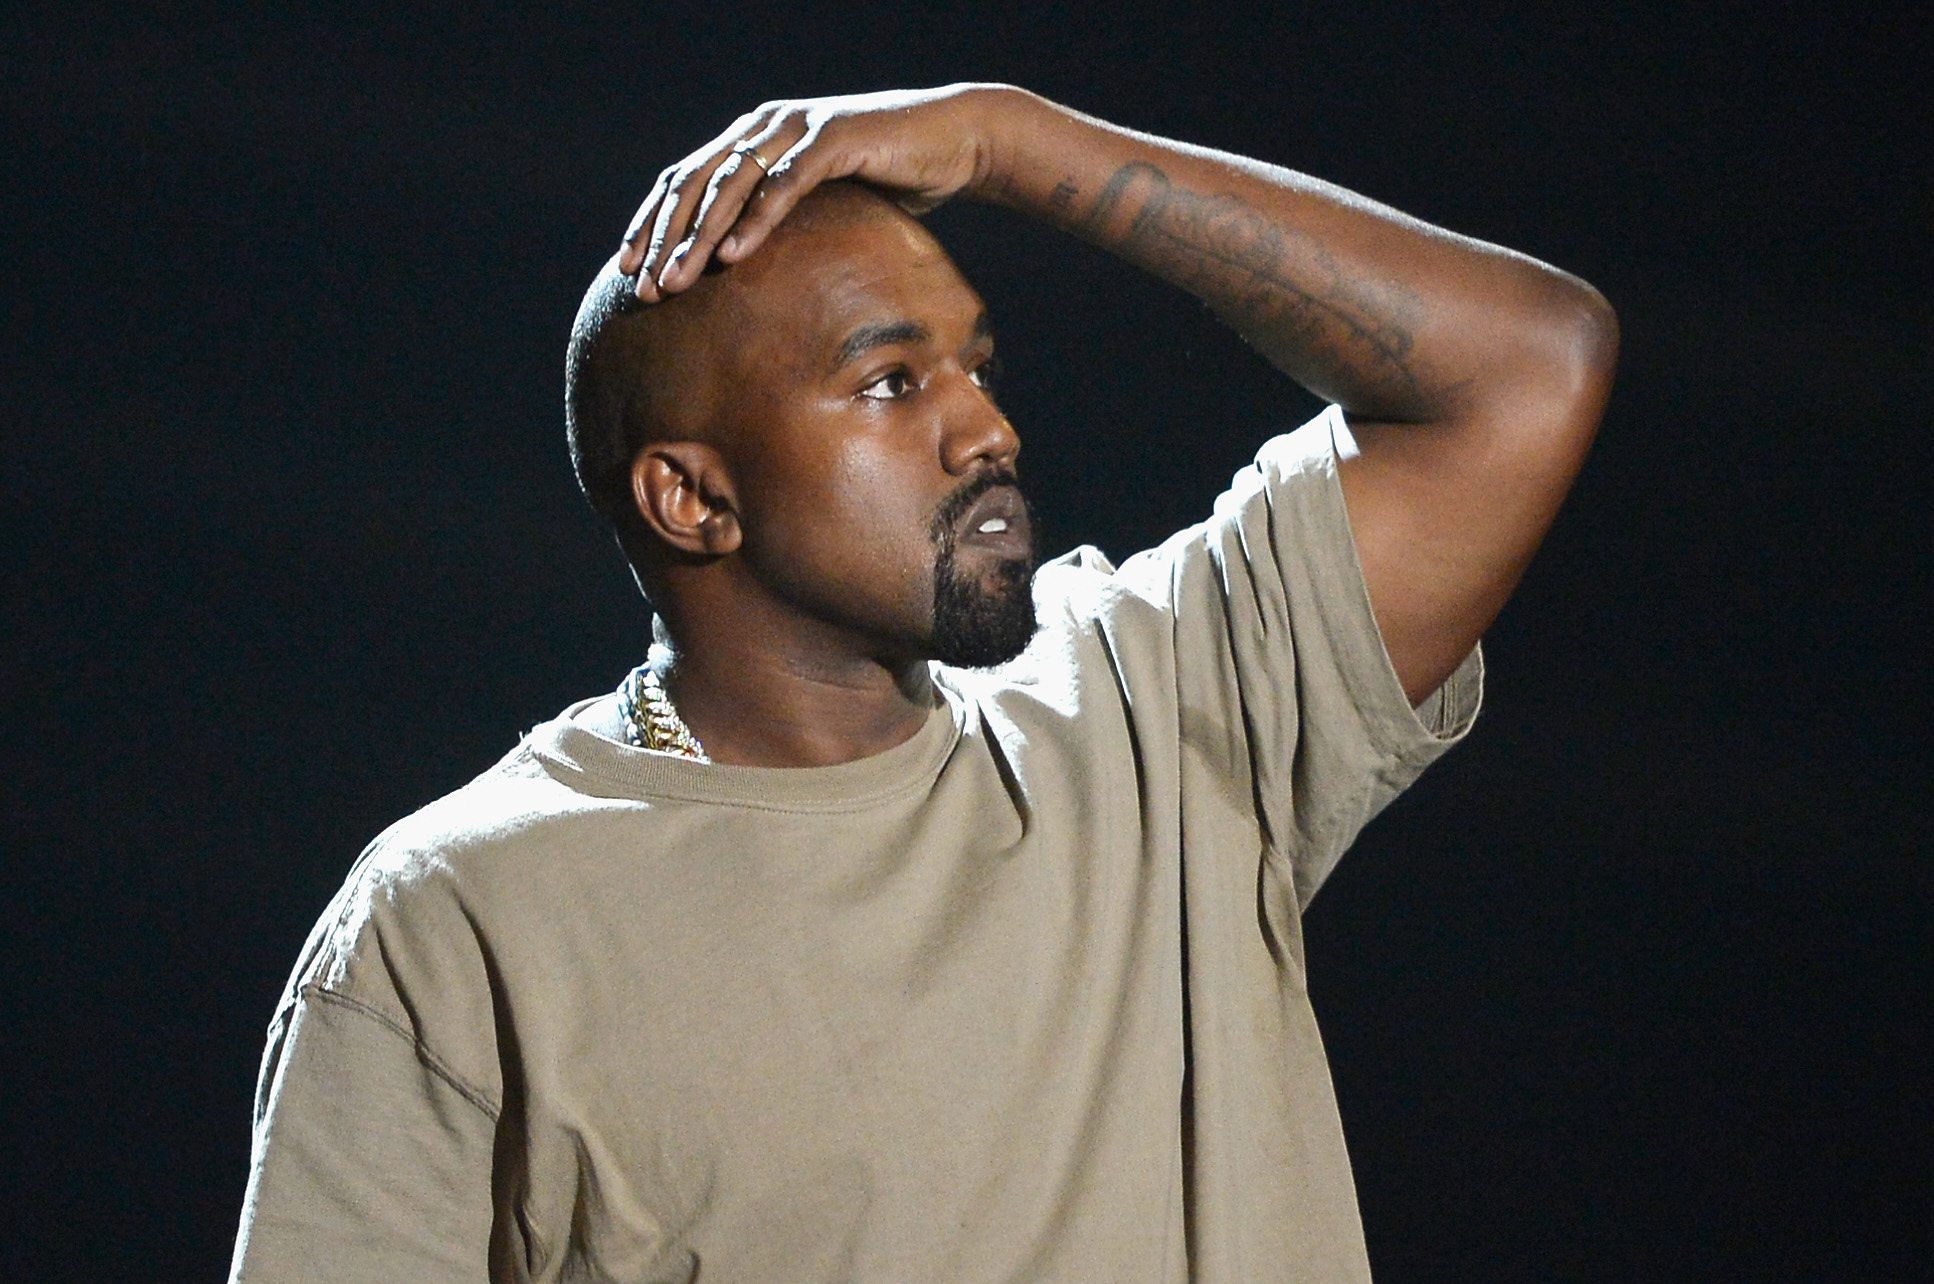 Kanye Wests Haircut Reportedly Costs More Than Rent In This Major